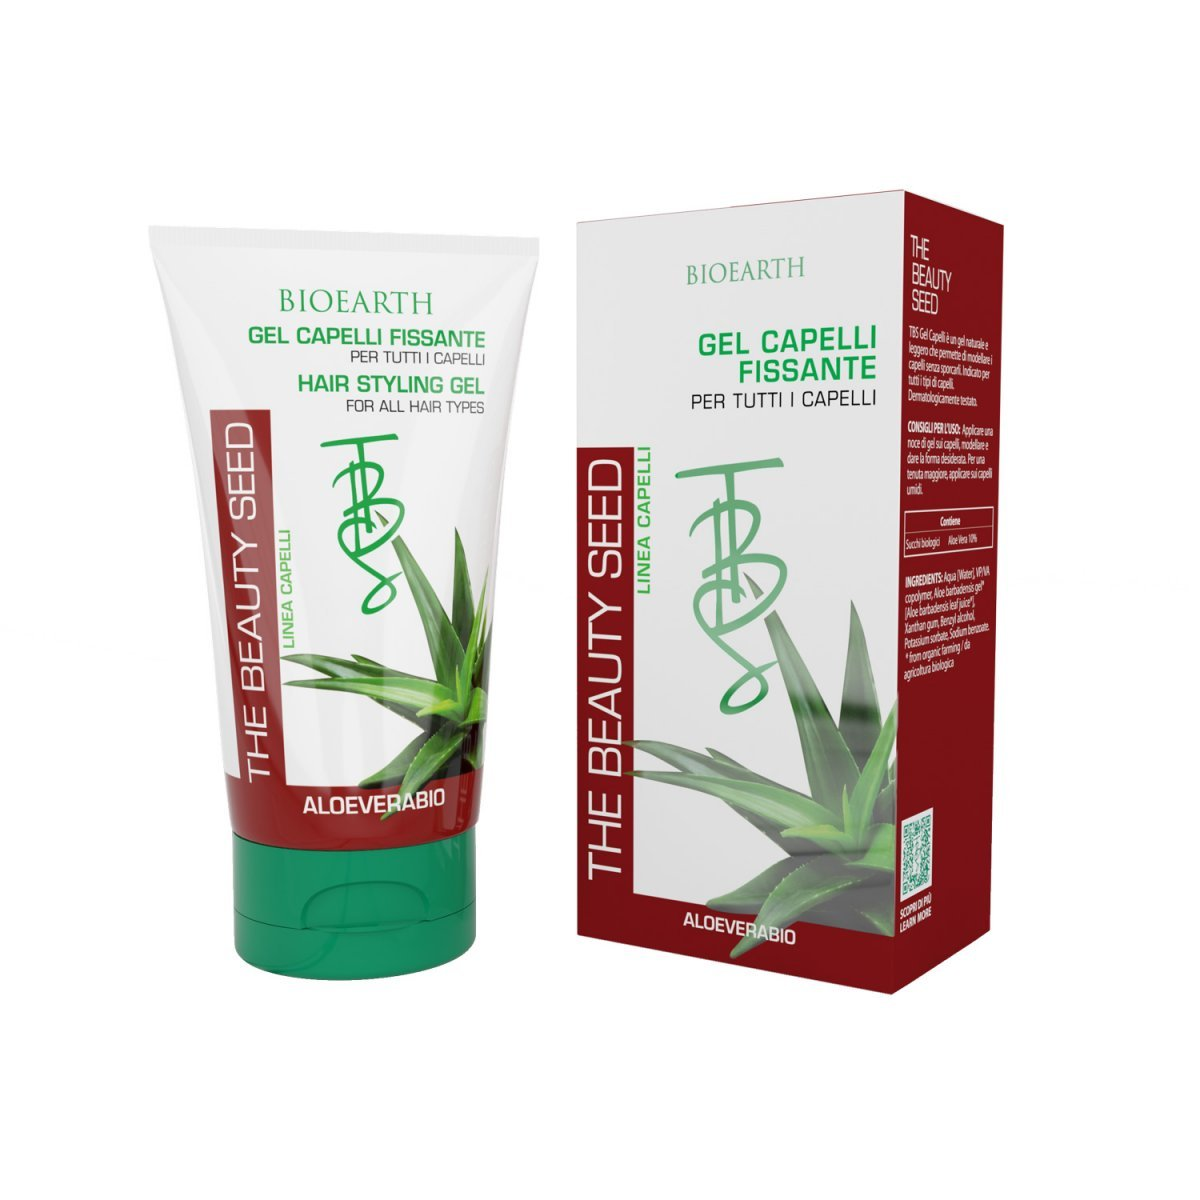 The Beauty Seed Gel Capelli Fissante all'Aloe